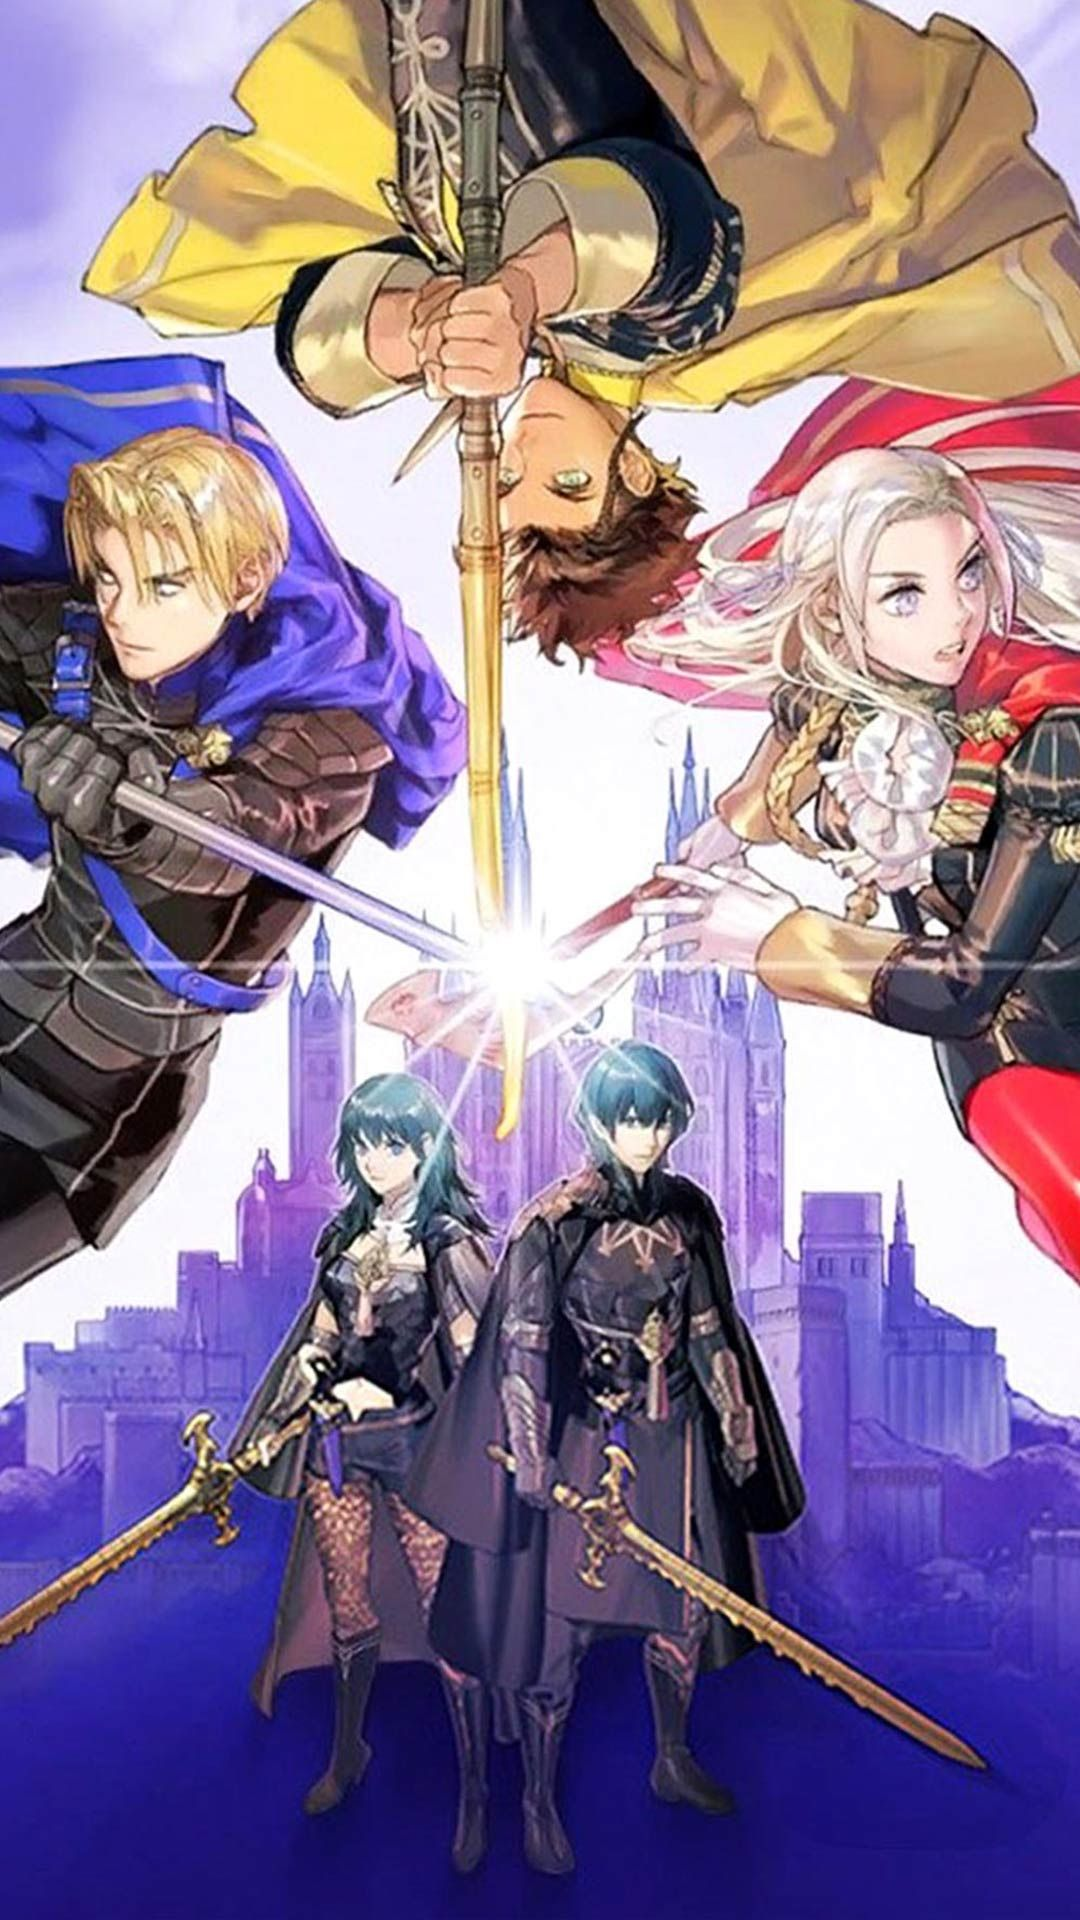 Fire Emblem Three Houses Wallpaper For Android Mobile Phone And Iphone Free Download Hd Image With Sce Fire Emblem Wallpaper Fire Emblem Characters Fire Emblem